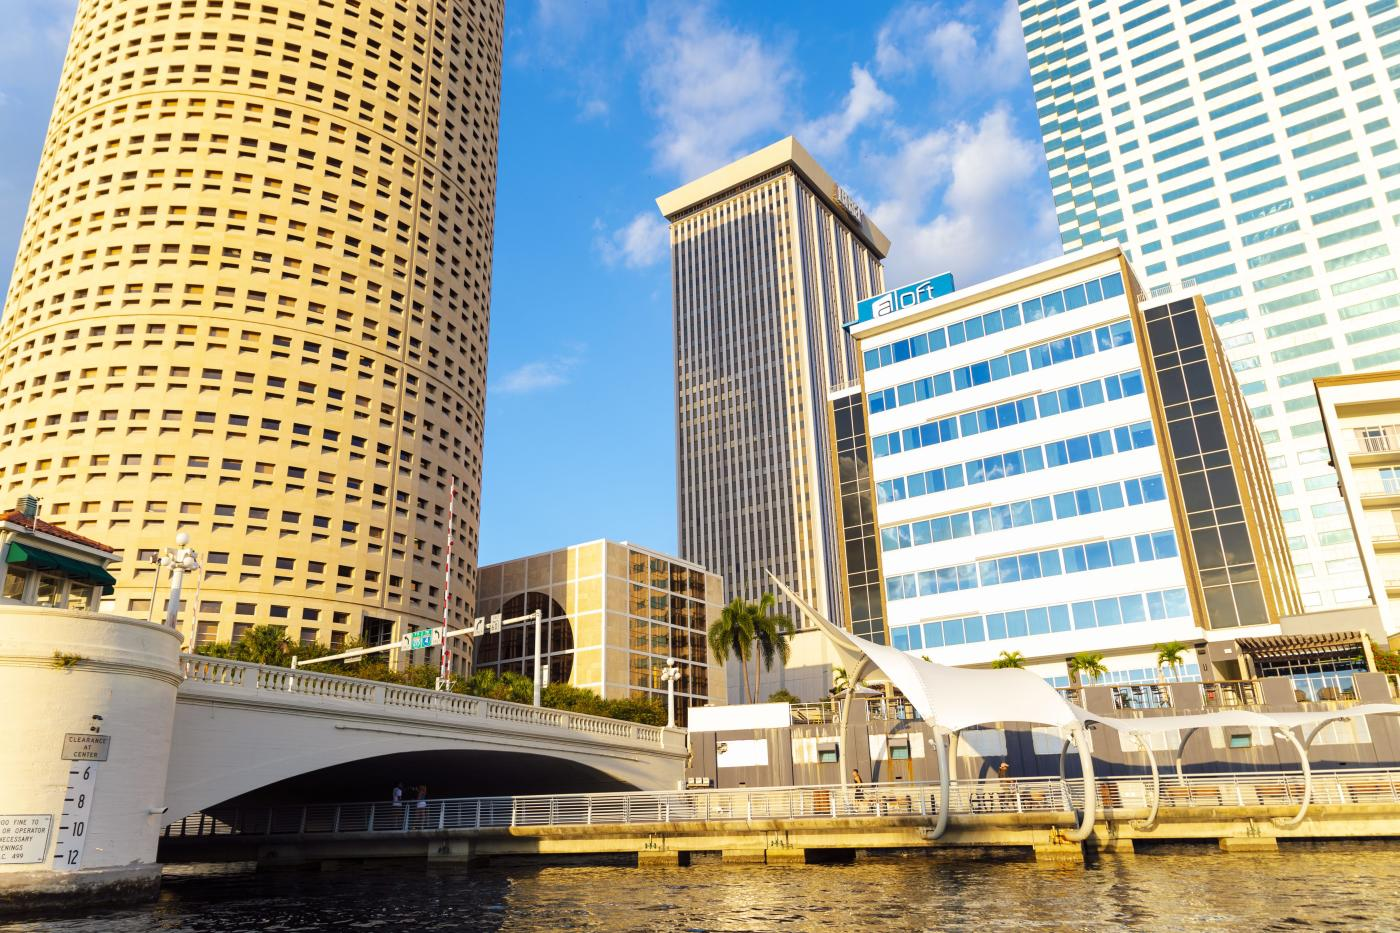 Downtown Tampa Riverwalk